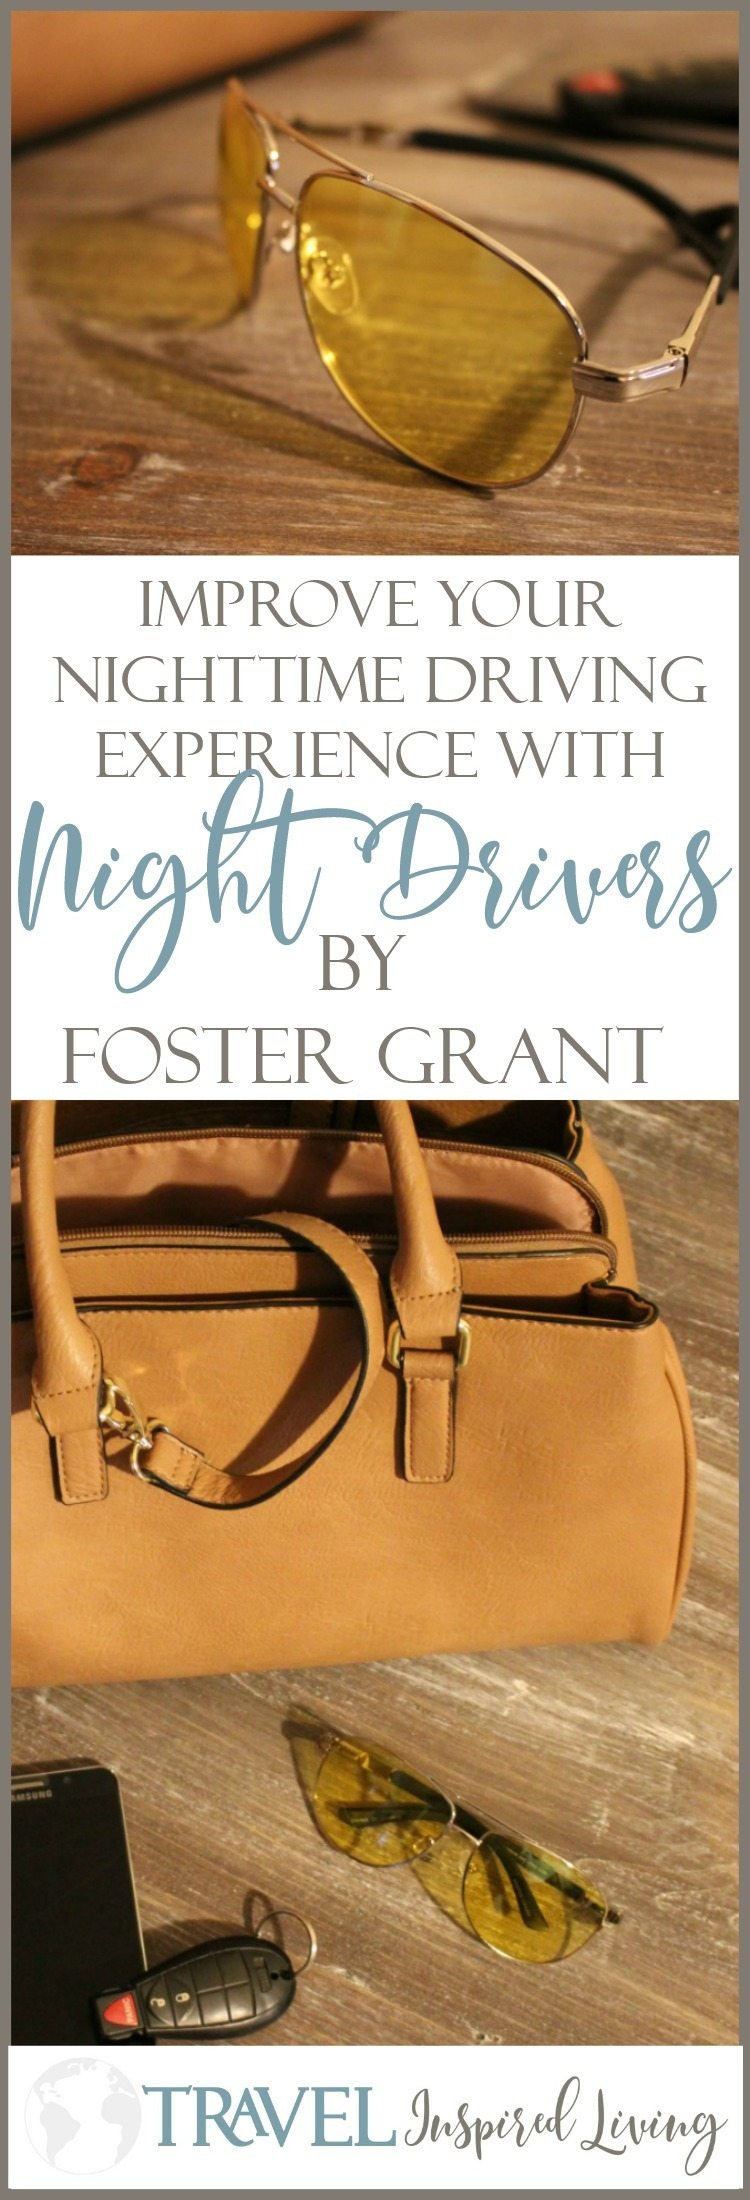 Improve your nighttime driving experience with Night Drivers by Foster Grant